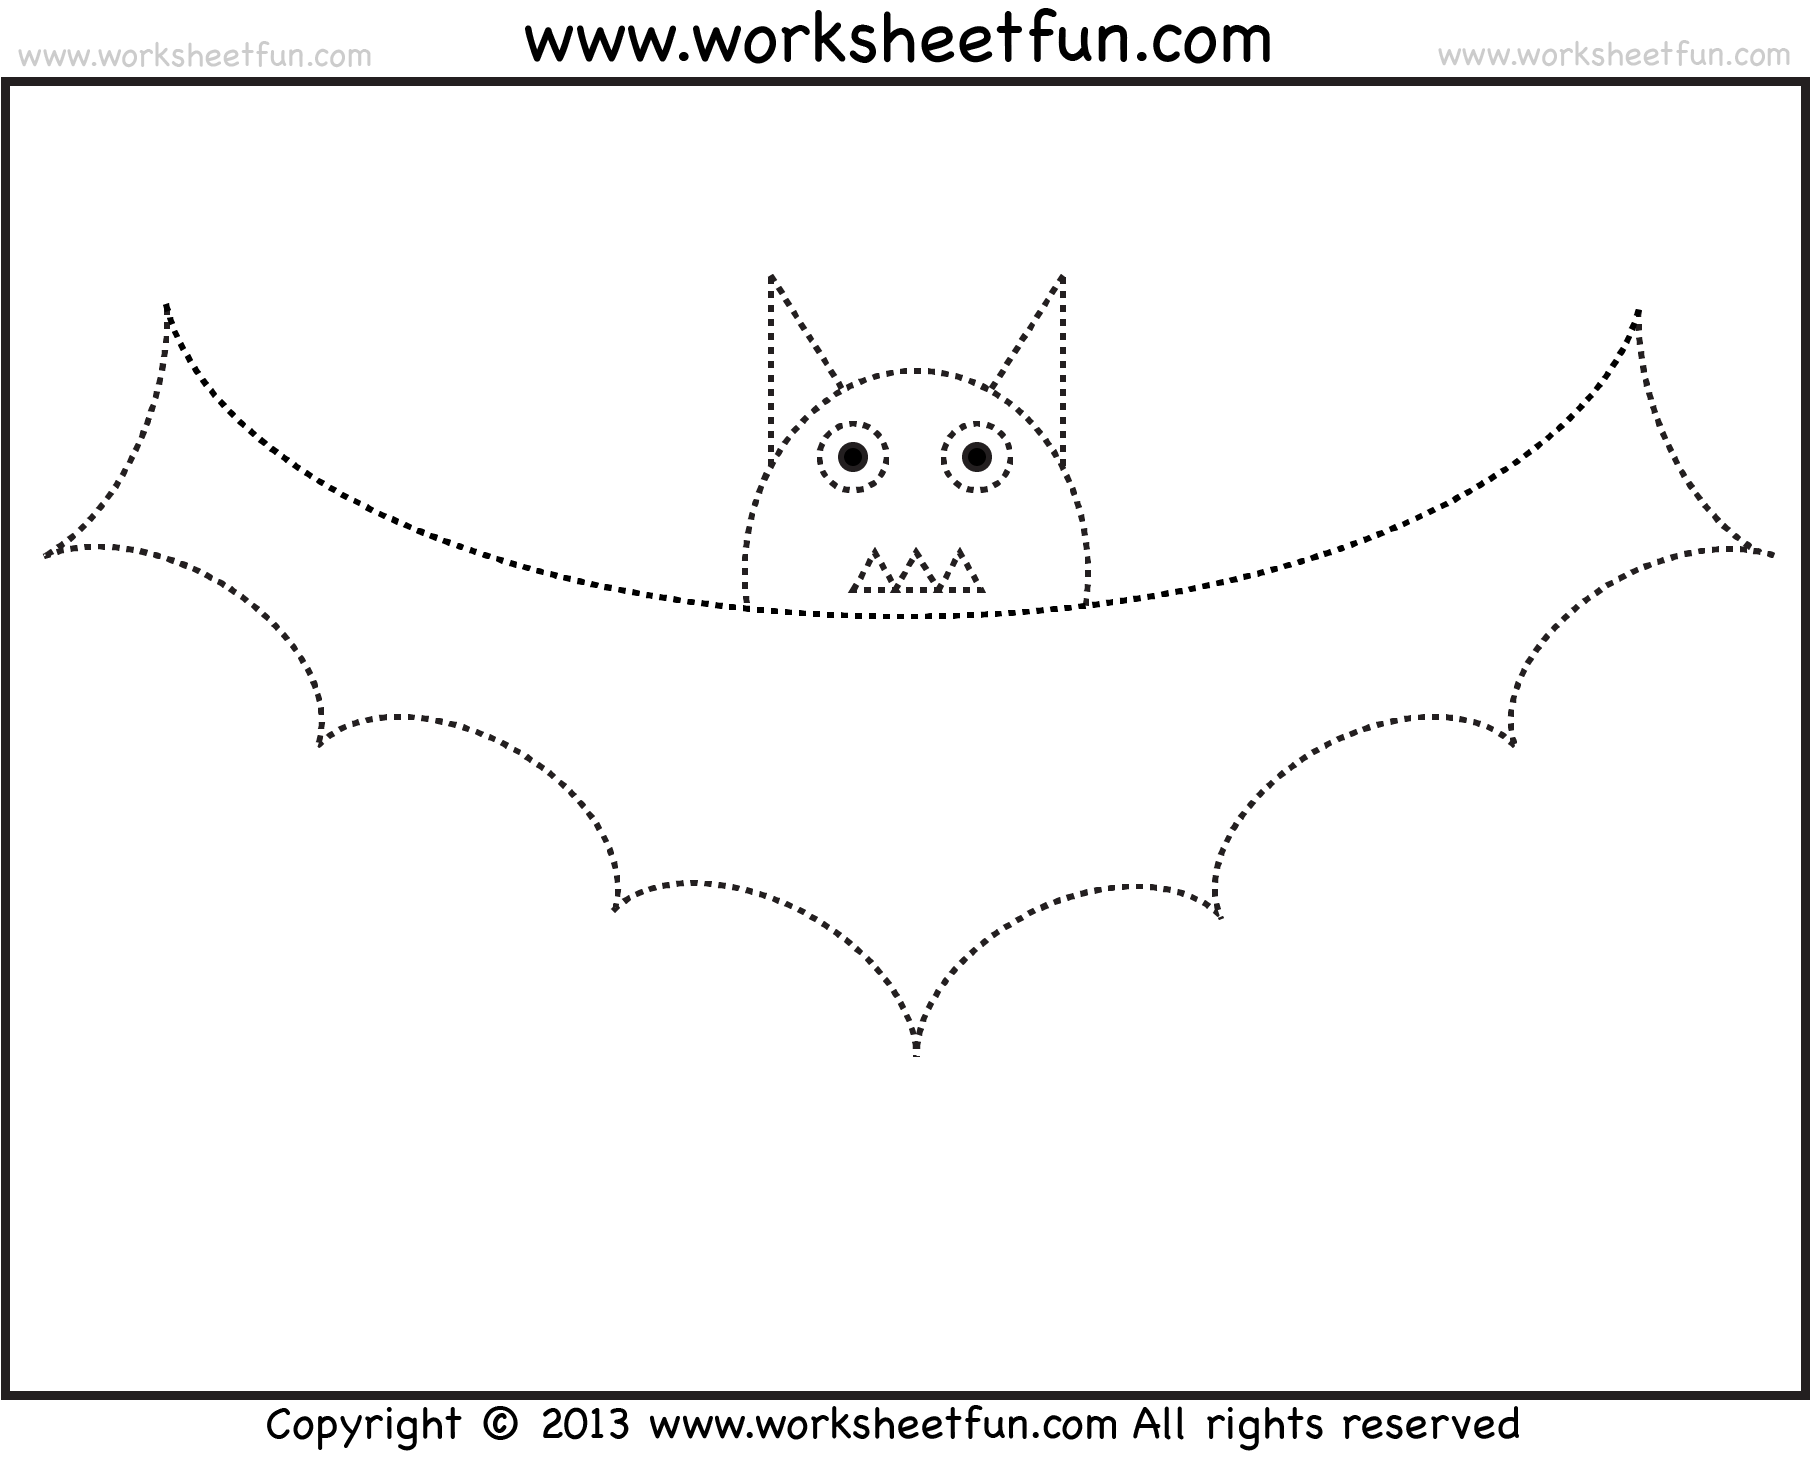 Bat Tracing And Coloring 2 Halloween Worksheets Free Printable Worksheets Worksheetfun